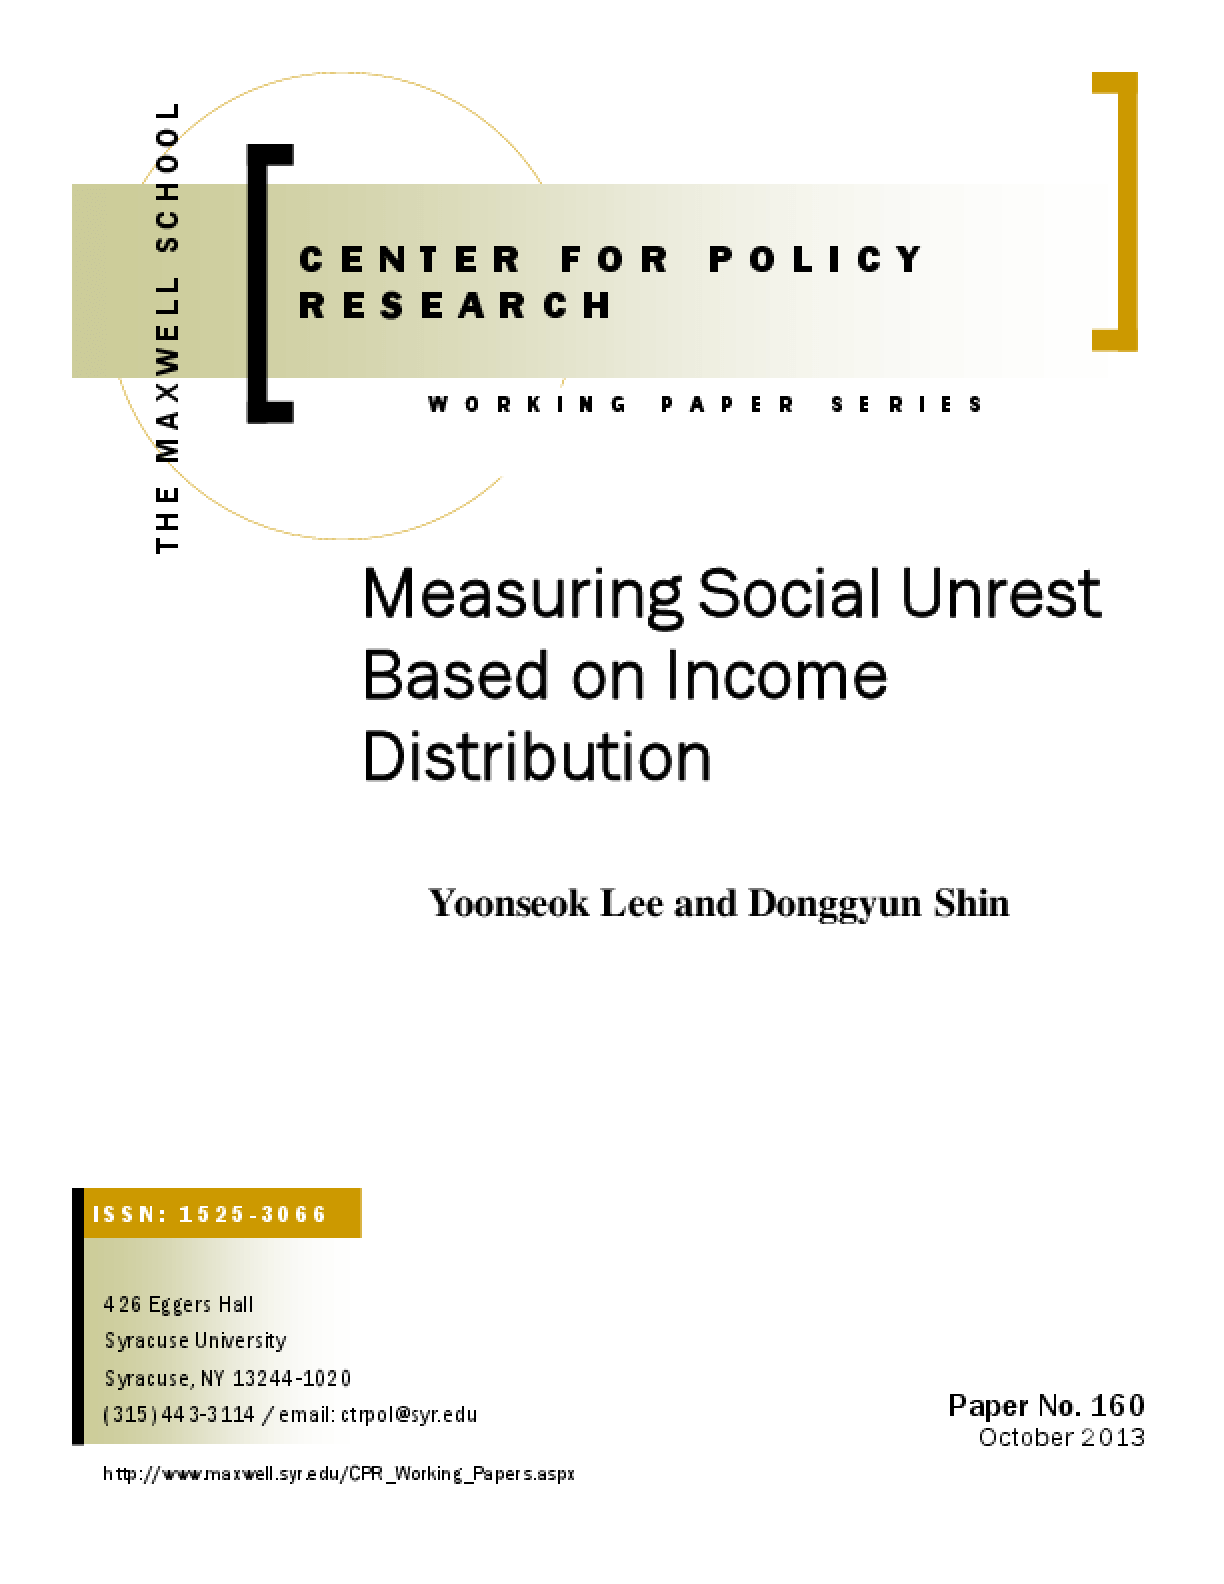 Measuring Social Unrest Based on Income Distribution